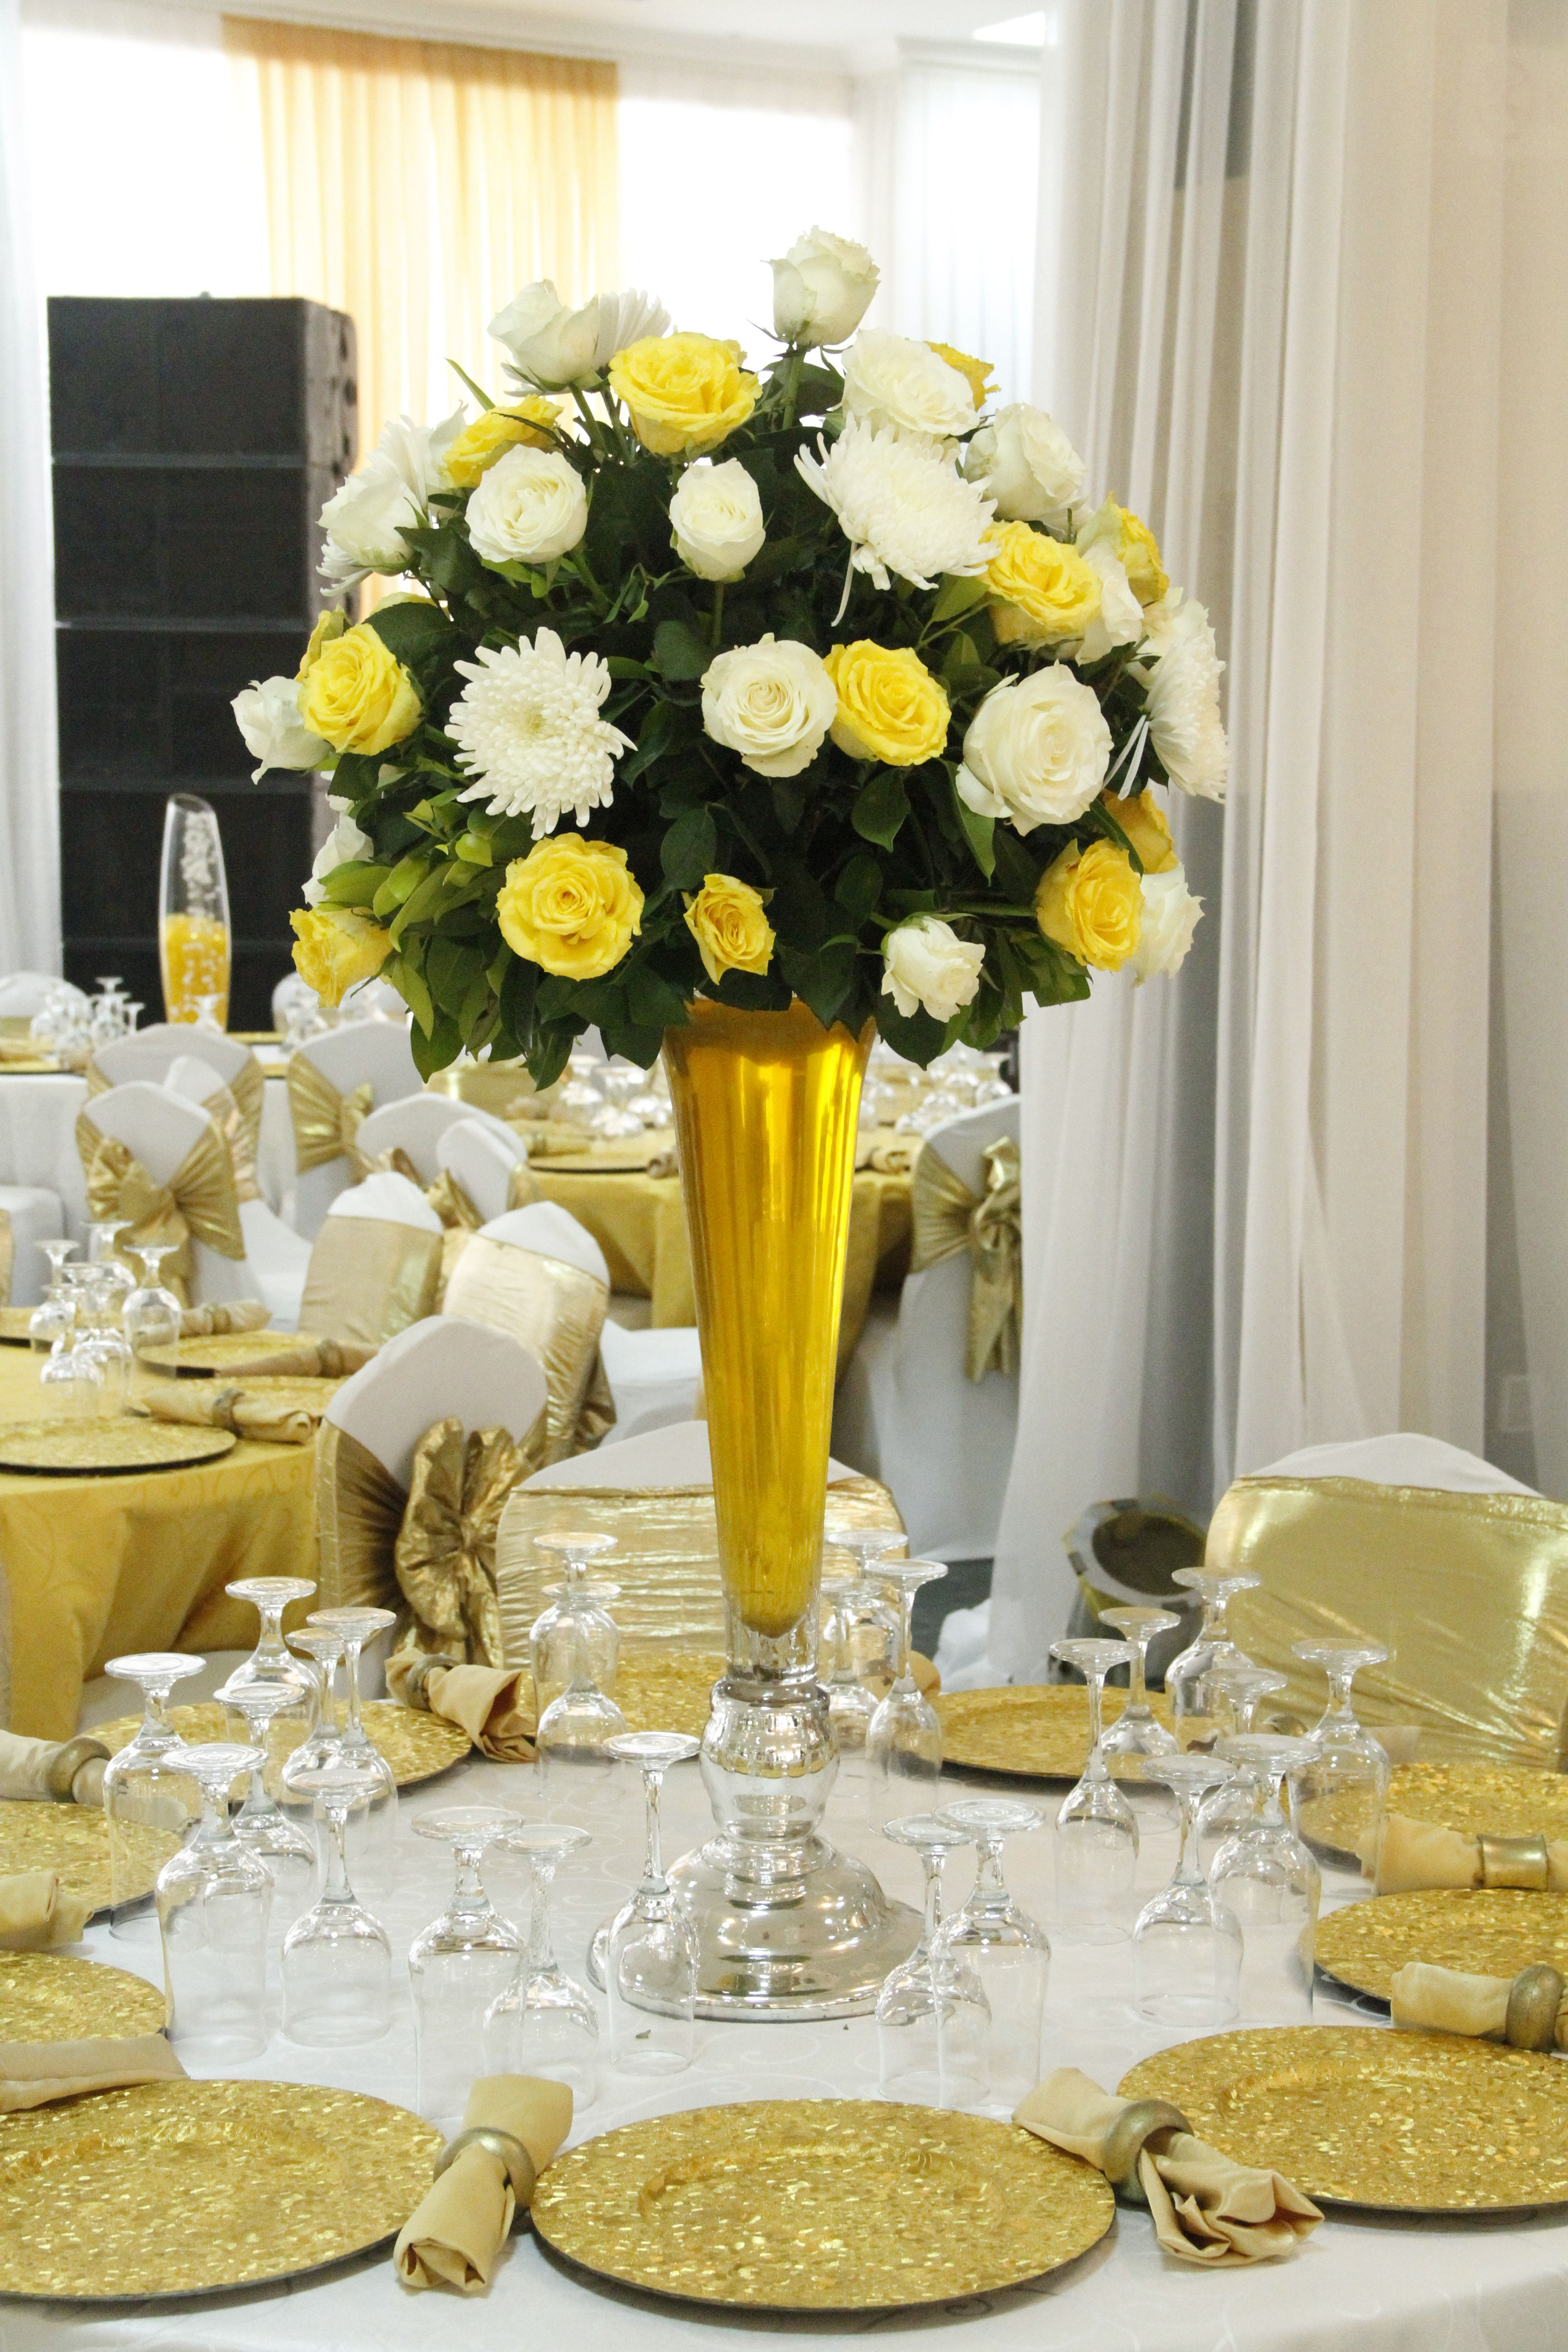 flowers centerpieces | 50th anniversary centerpieces, 50th ...